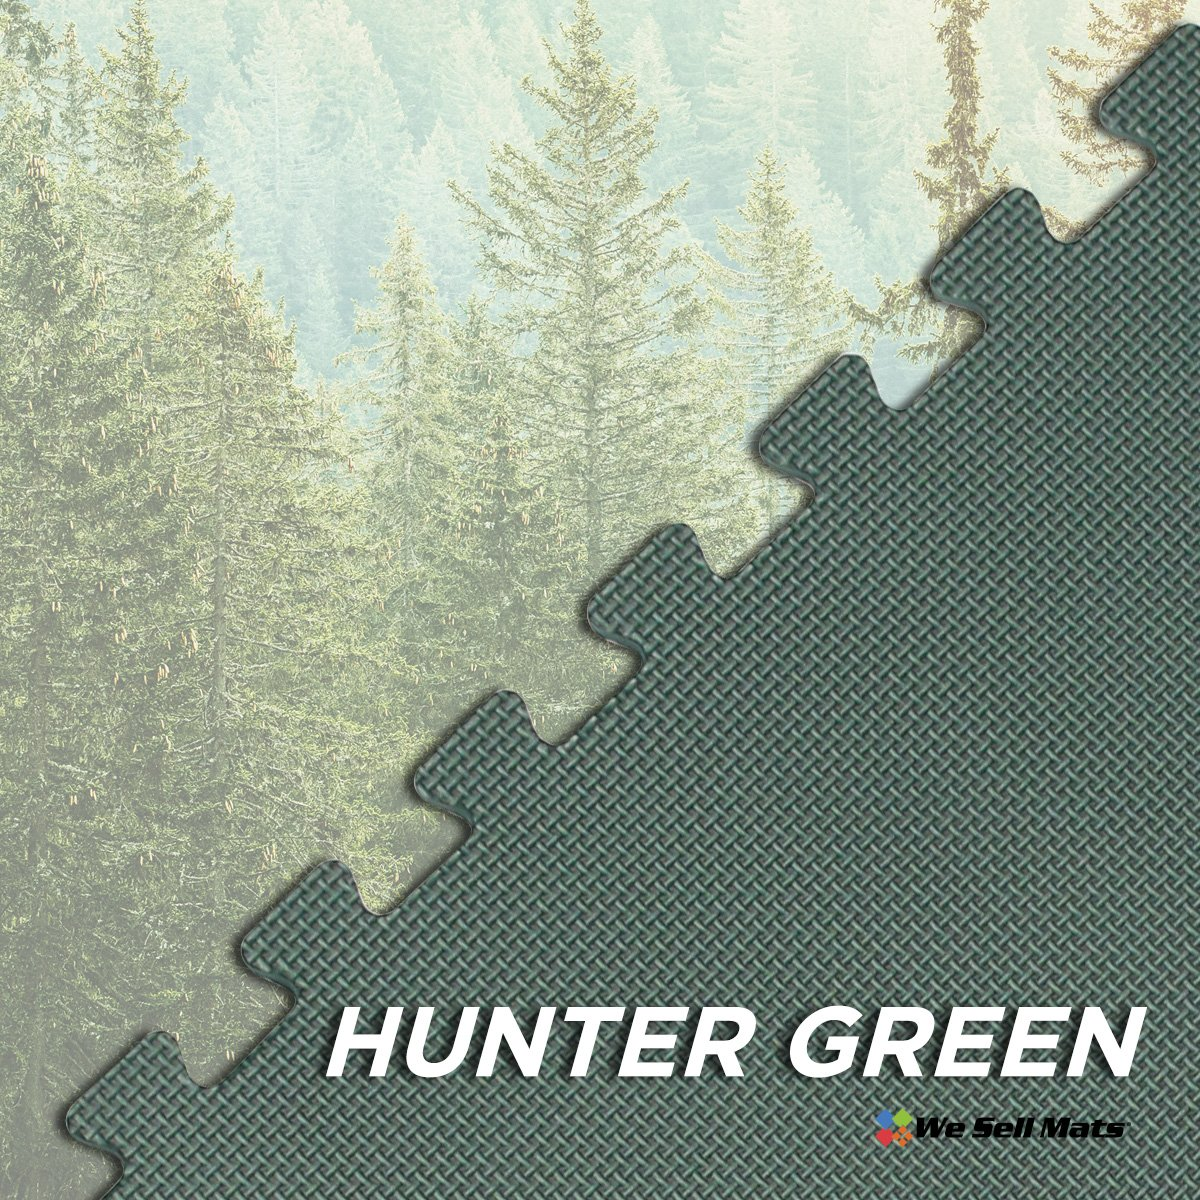 We Sell Mats Hunter Green 16 Sq Ft (4 Assorted Tiles + Borders) Foam Interlocking Anti-Fatigue Exercise Gym Floor Square Trade Show Tiles by We Sell Mats (Image #5)